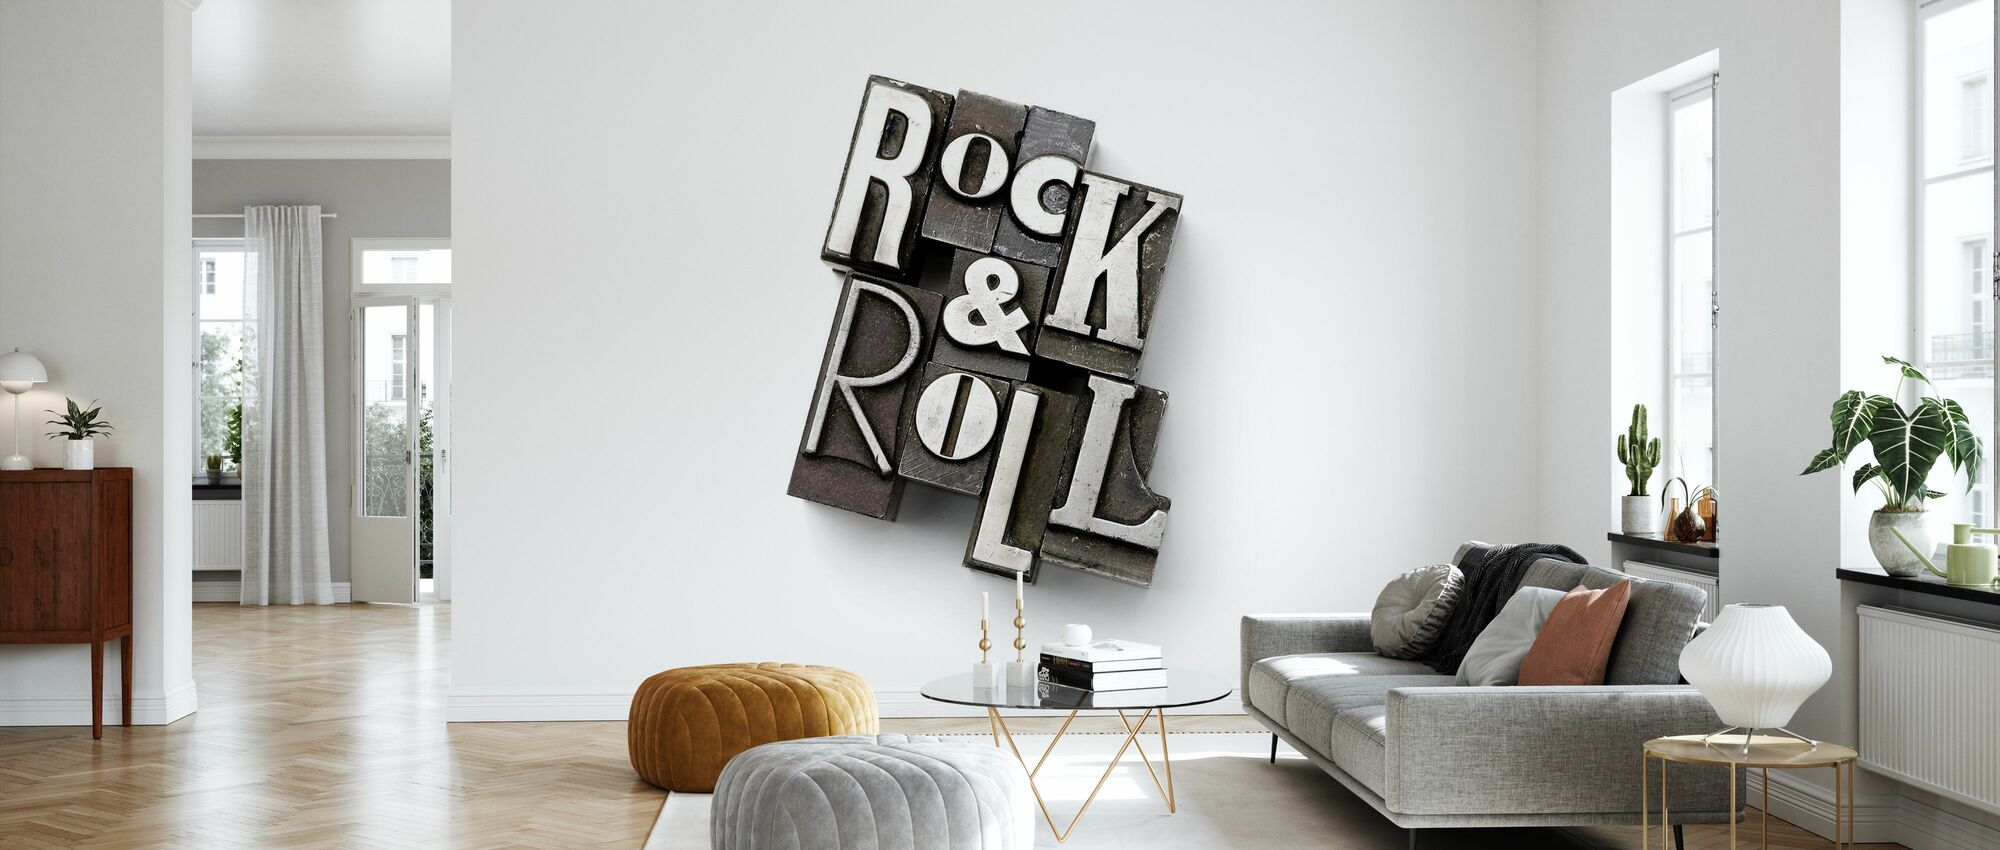 Rock and Roll Lead Types - Wallpaper - Living Room